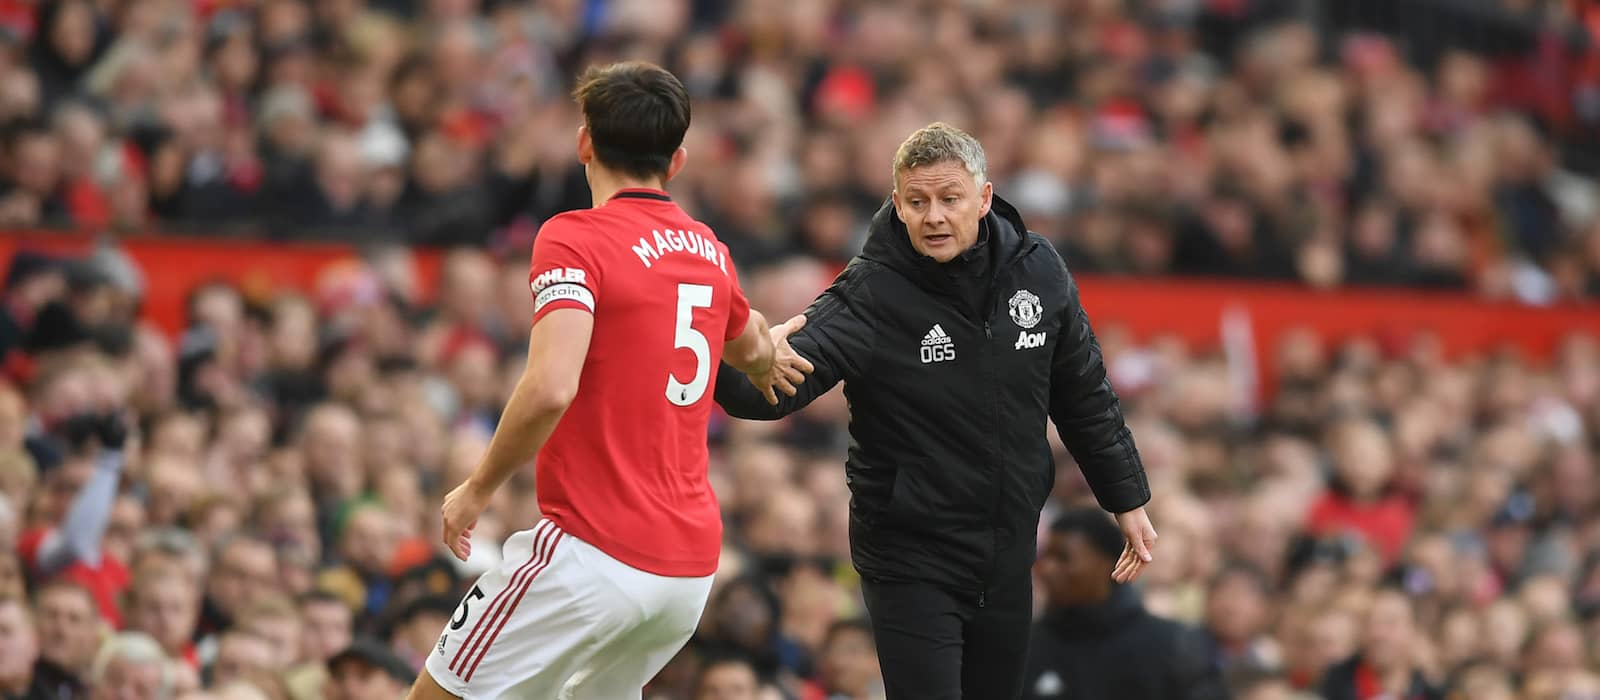 Ole Gunnar Solskjaer confirms Harry Maguire could return for Manchester United against Norwich City